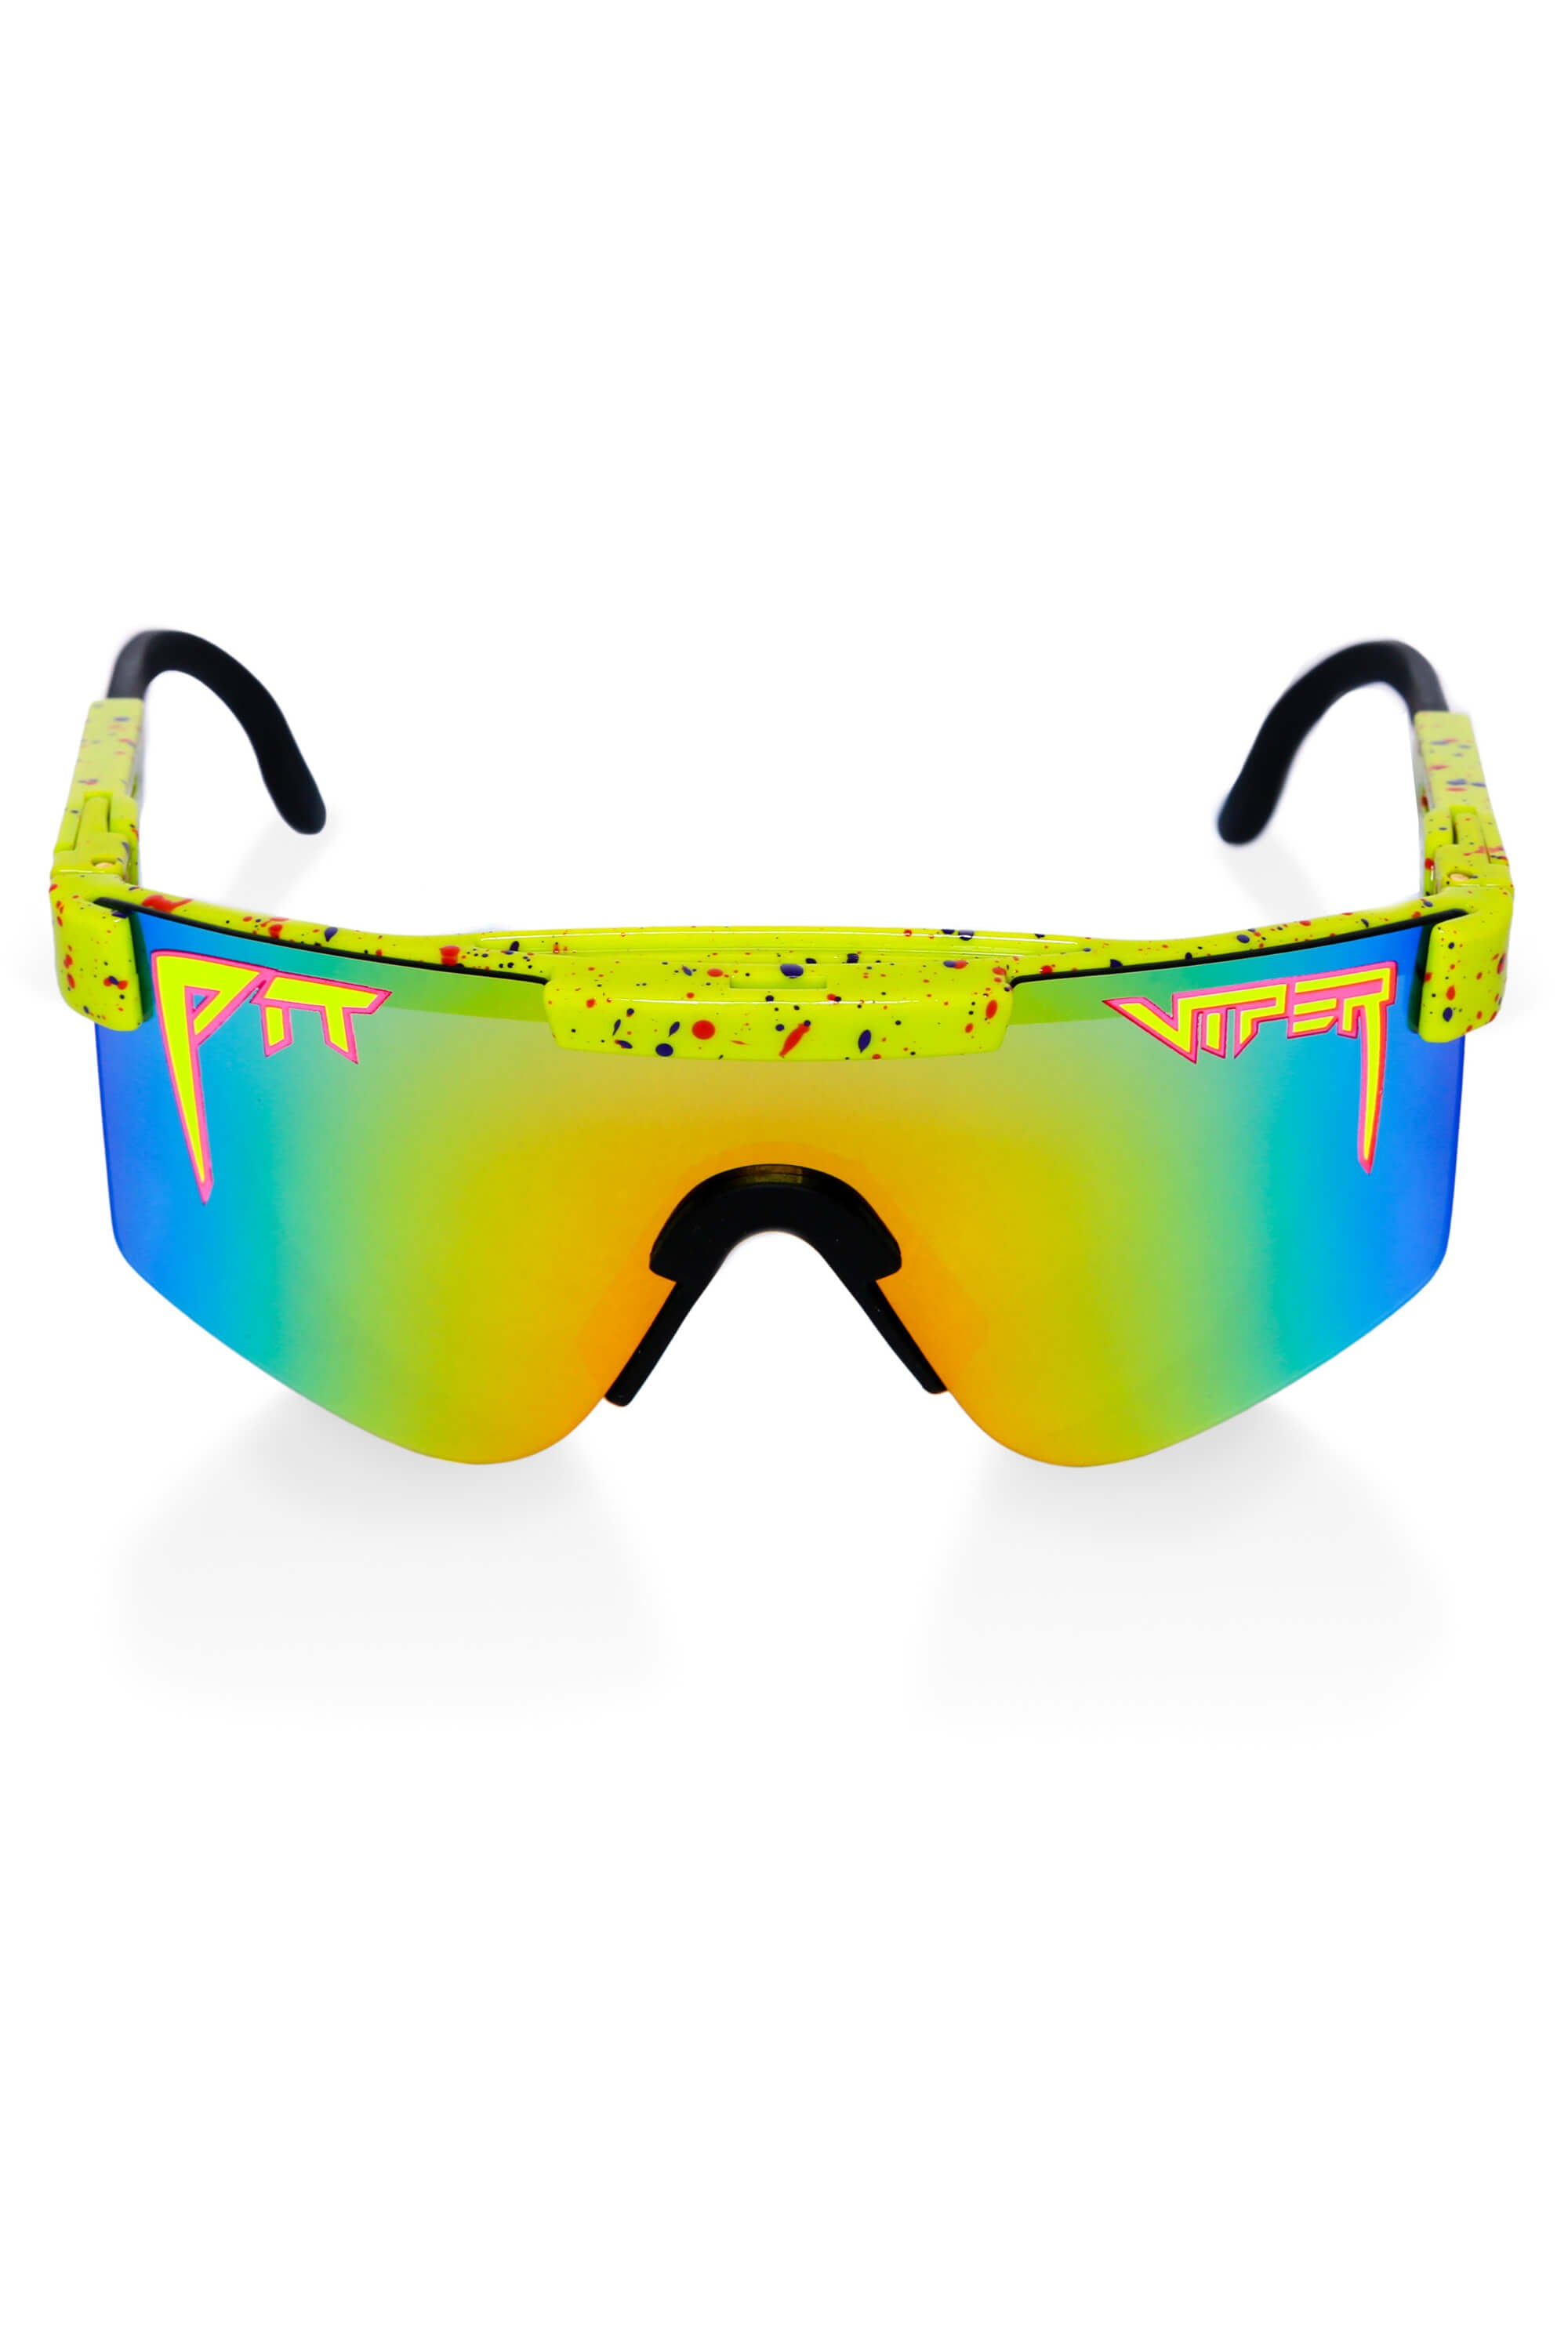 Yellow Frame Pit Viper Sunglasses The Chernobyls Pit